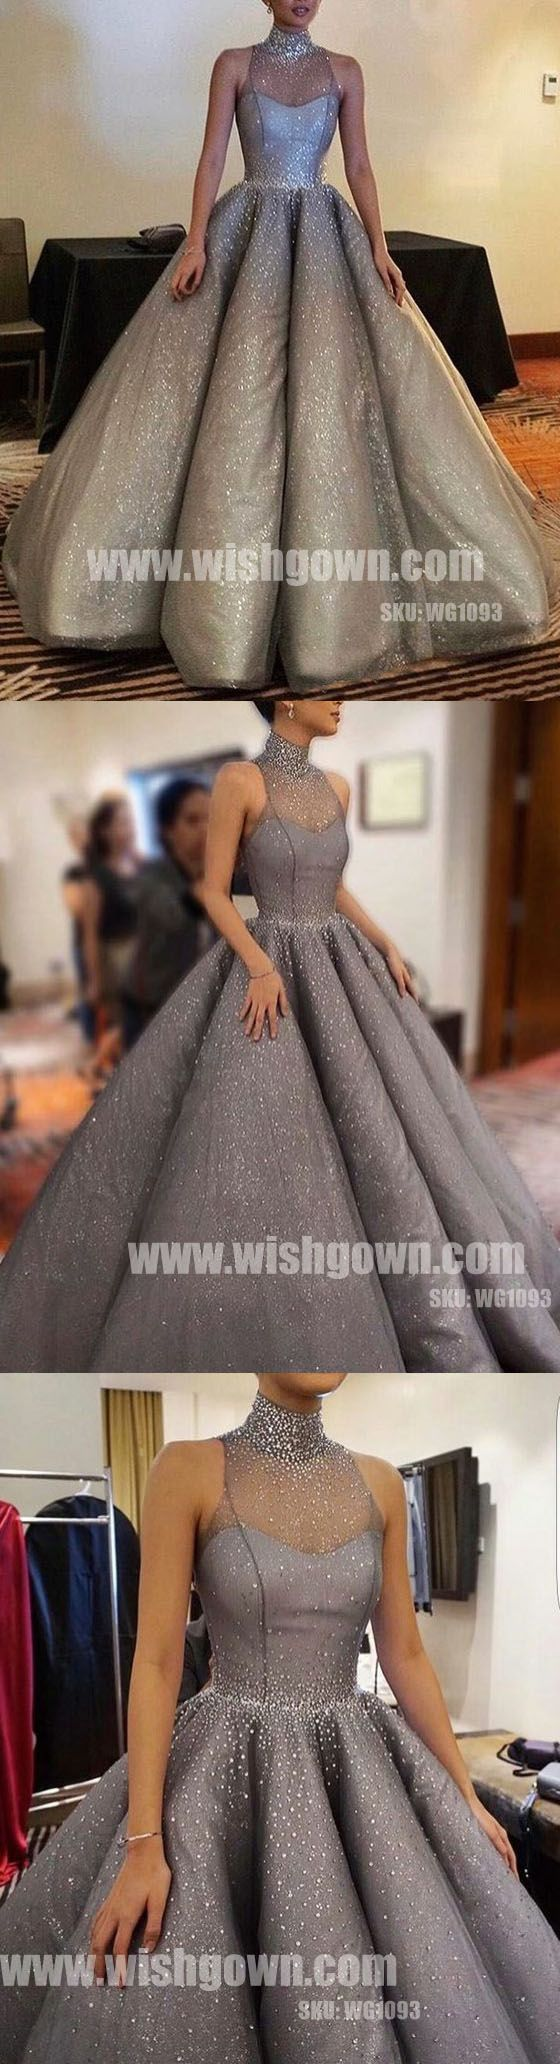 Sparkle Halter New Arrival Inexpensive Evening Long Prom Dresses Ball Gown, WG1093 #promdress #promdresses #longpromdress #longpromdresses #eveningdress